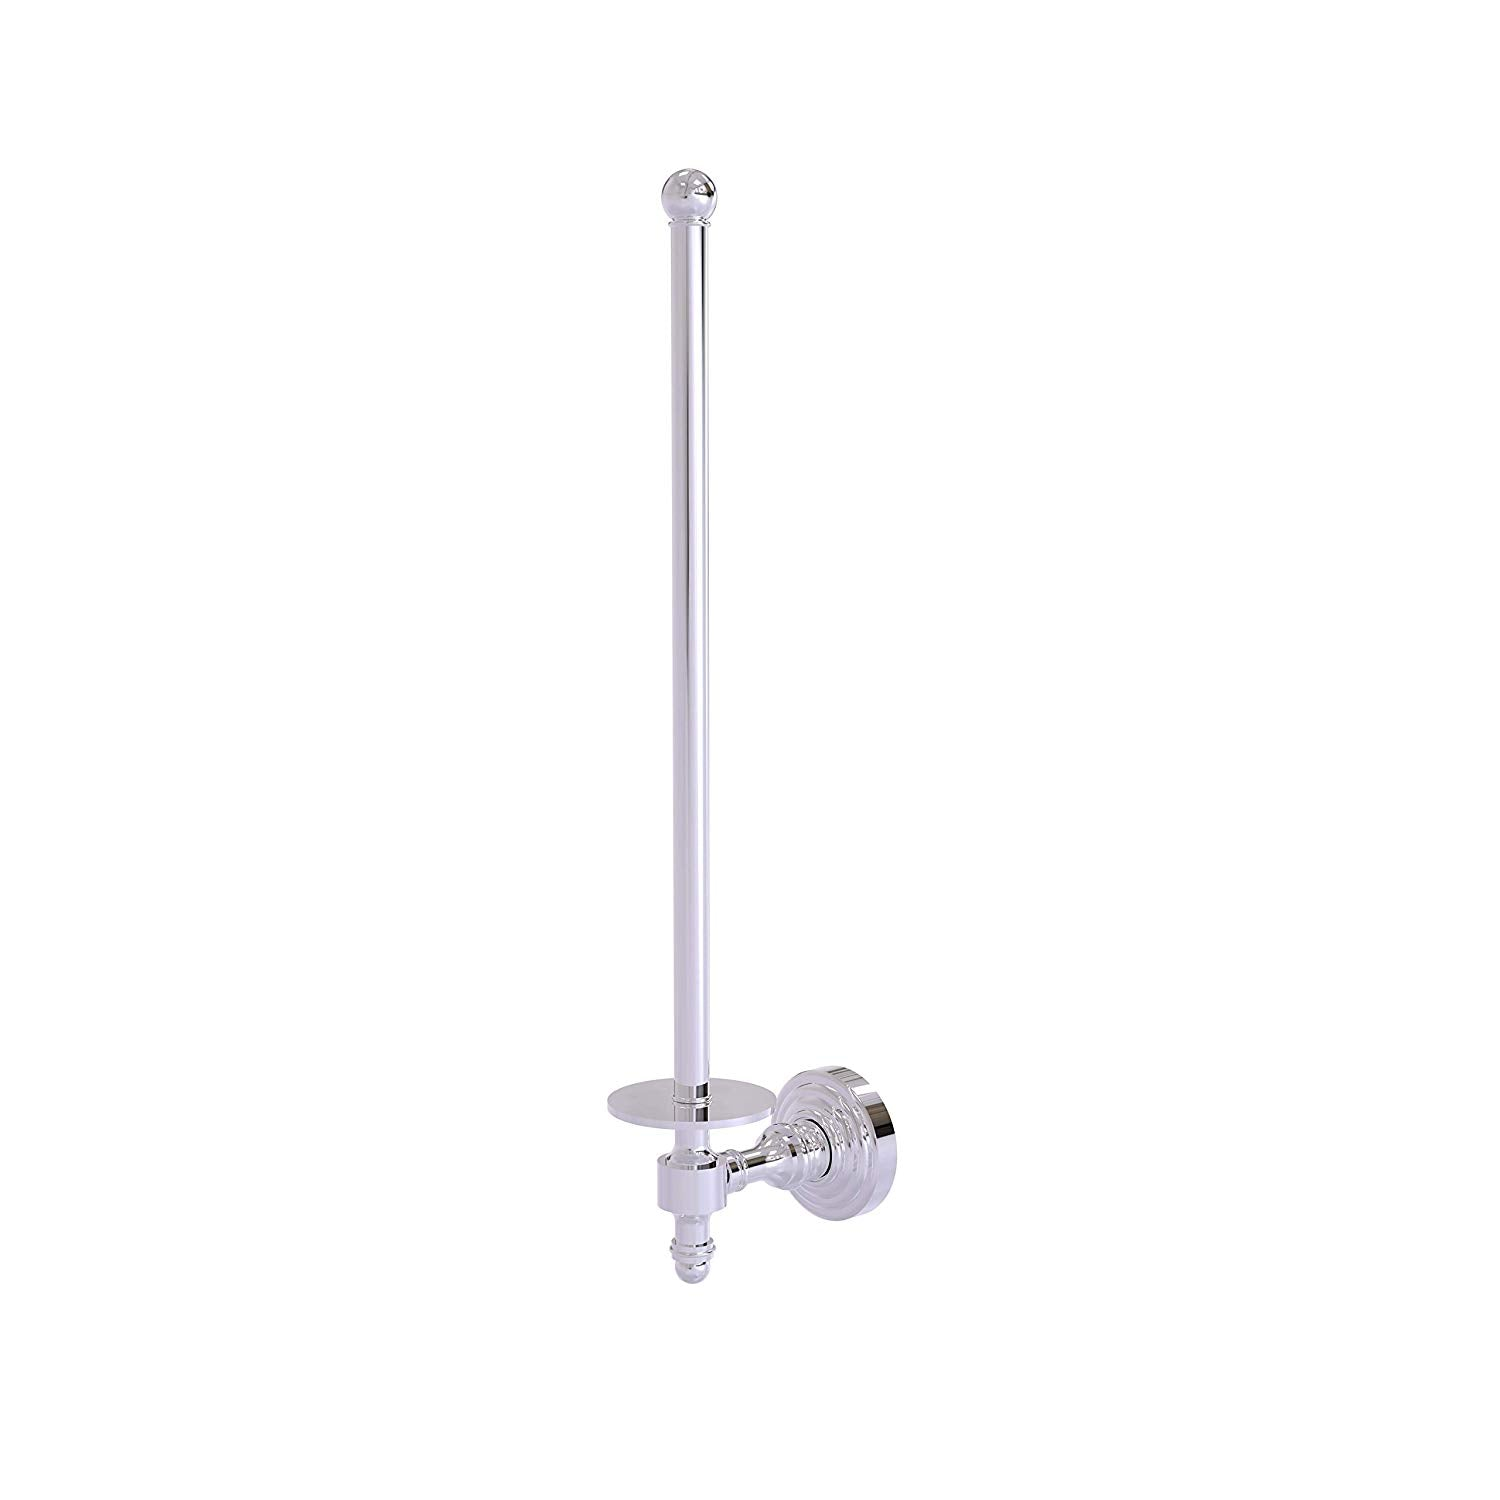 Allied Brass RW-24U/12-PC Retro Wave Collection Wall Mounted Paper Towel Holder, Polished Chrome